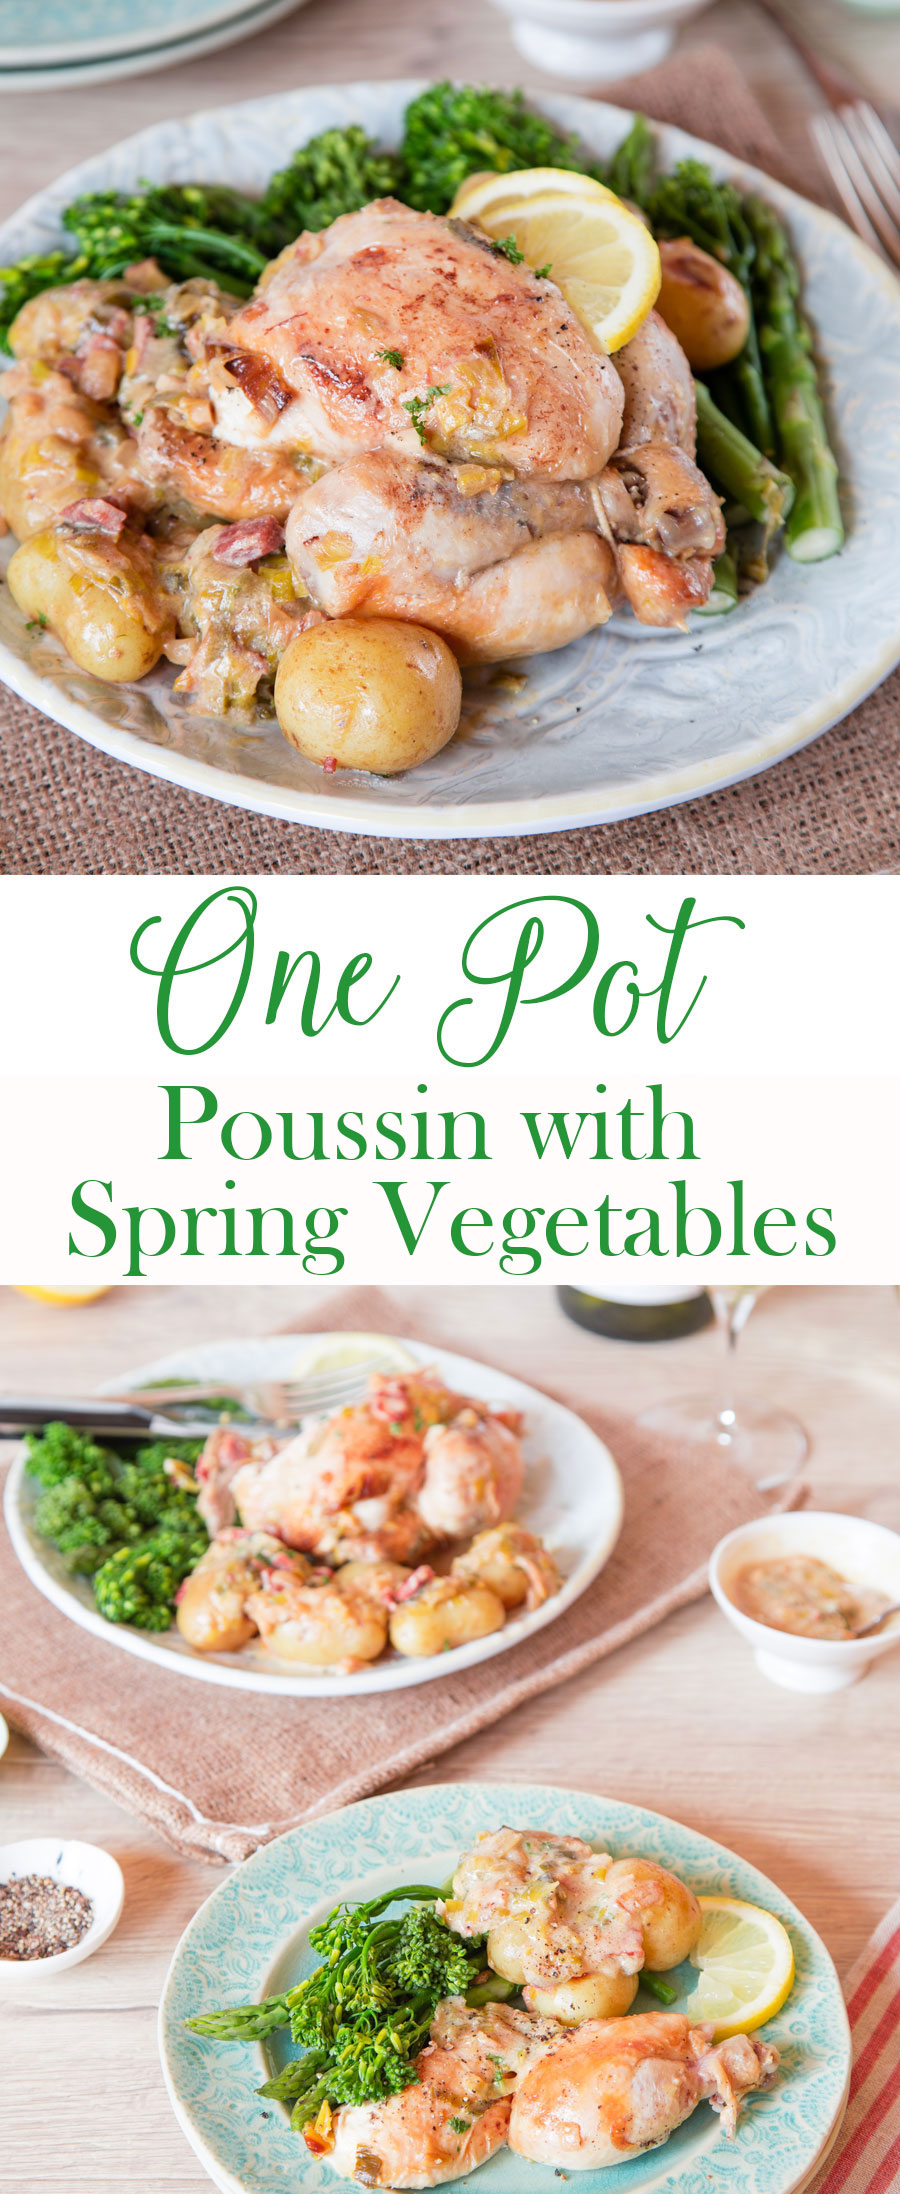 An easy recipe for a one pot poussin cooked with spring vegetables and served in a creamy sauce